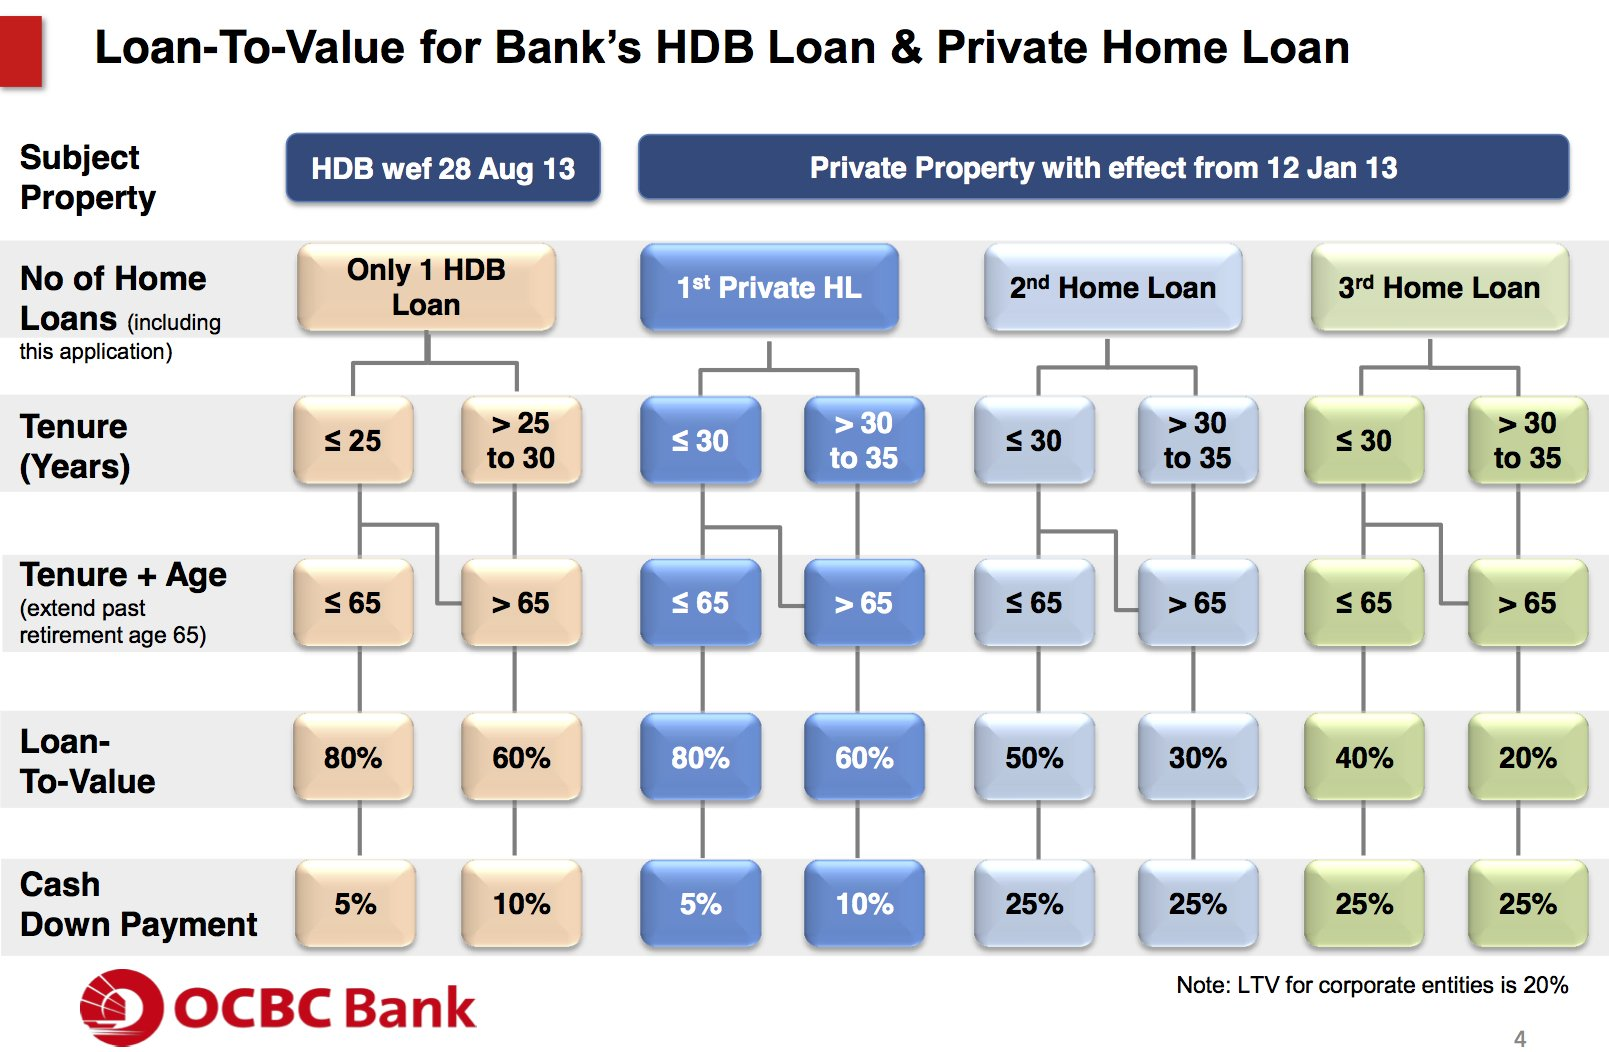 Loan-To-Value cash downpayment for Bank Home Loan